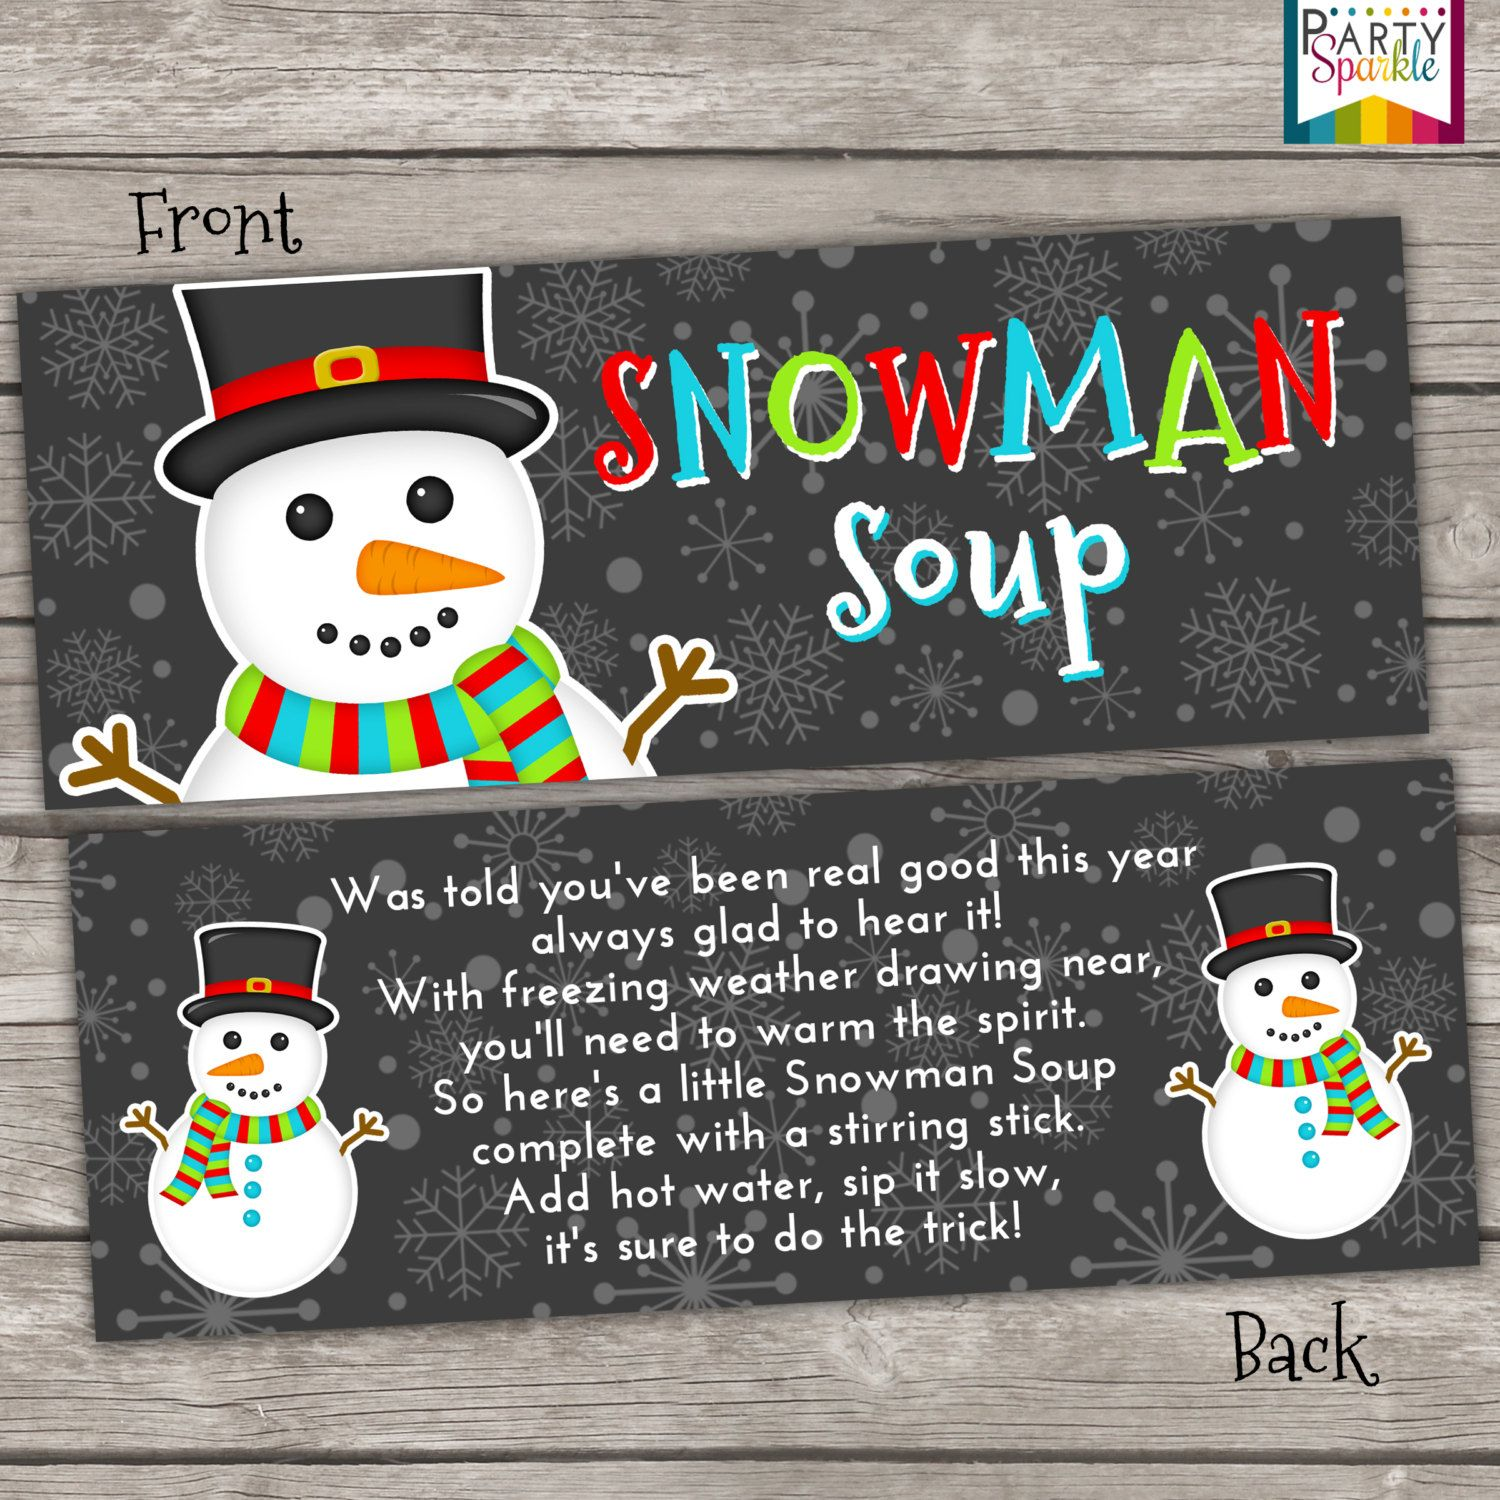 image regarding Snowman Soup Free Printable Bag Toppers identified as Quick Down load Snowman Soup Take care of Bag Toppers through